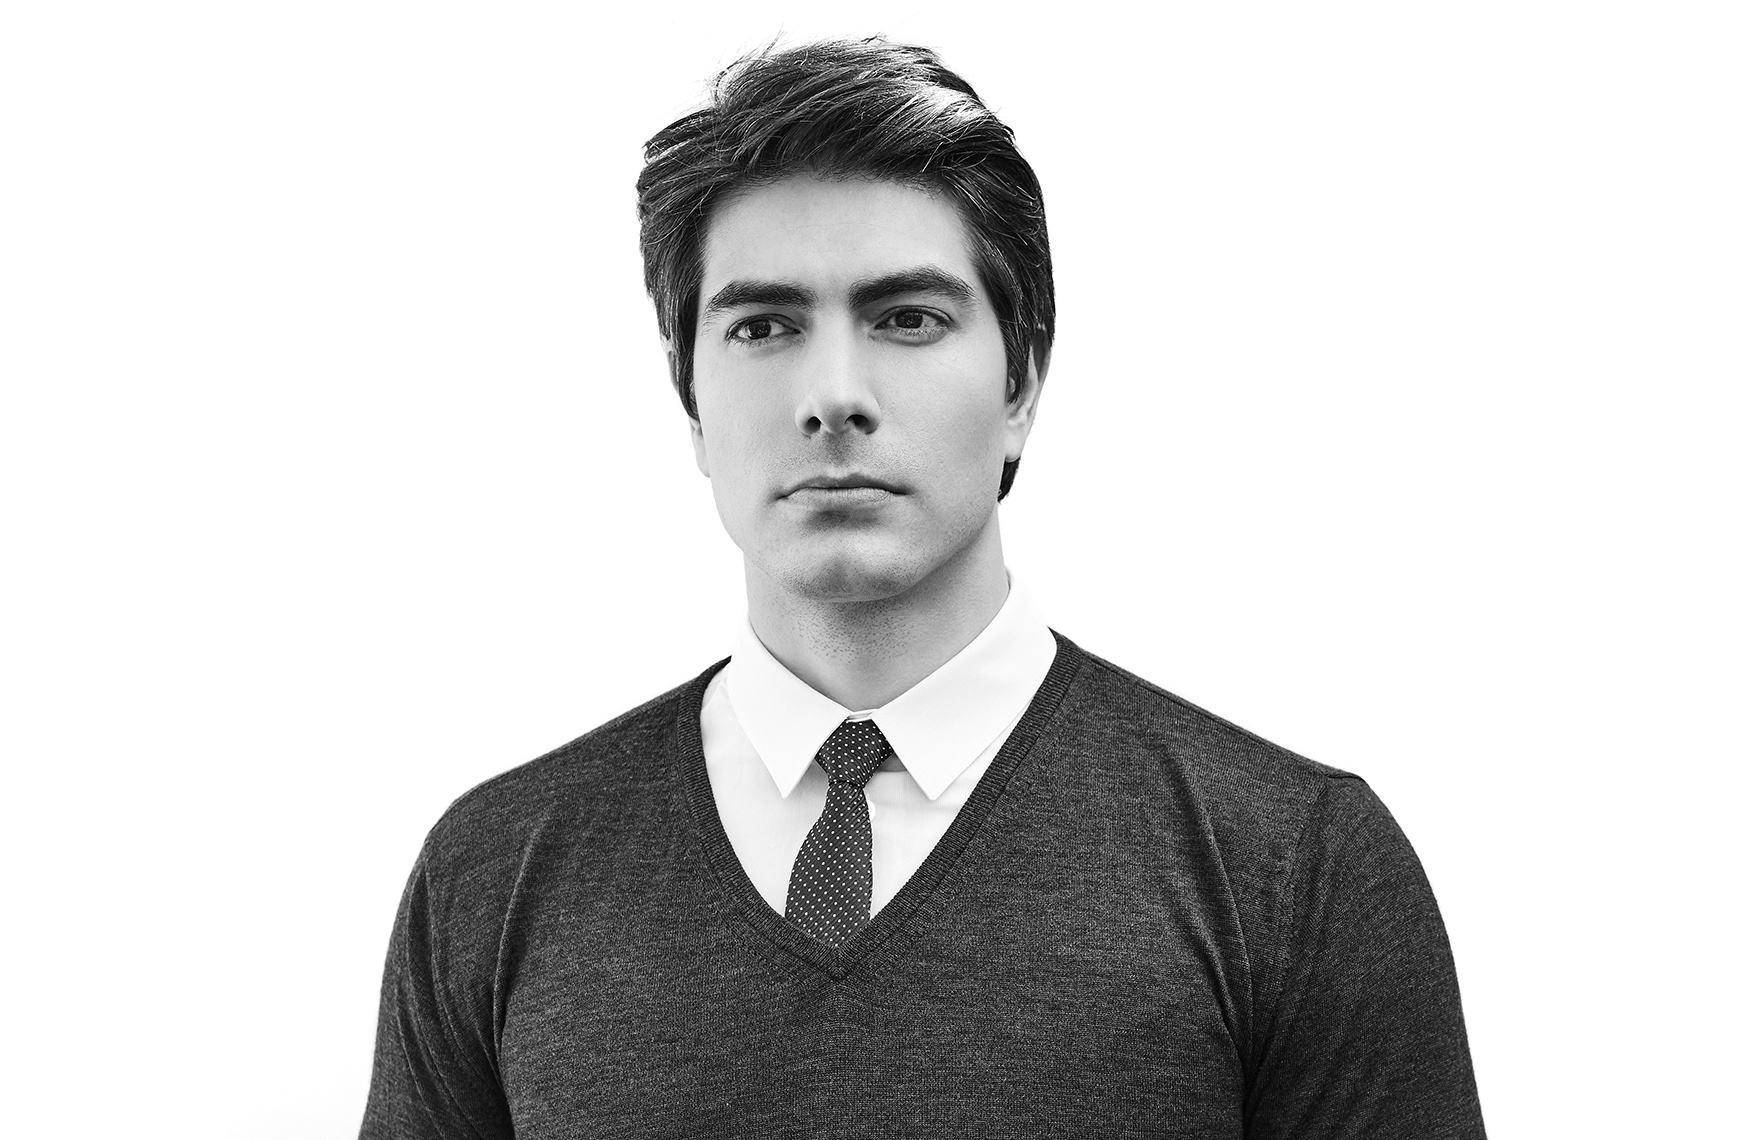 brandon_routh_7823_print